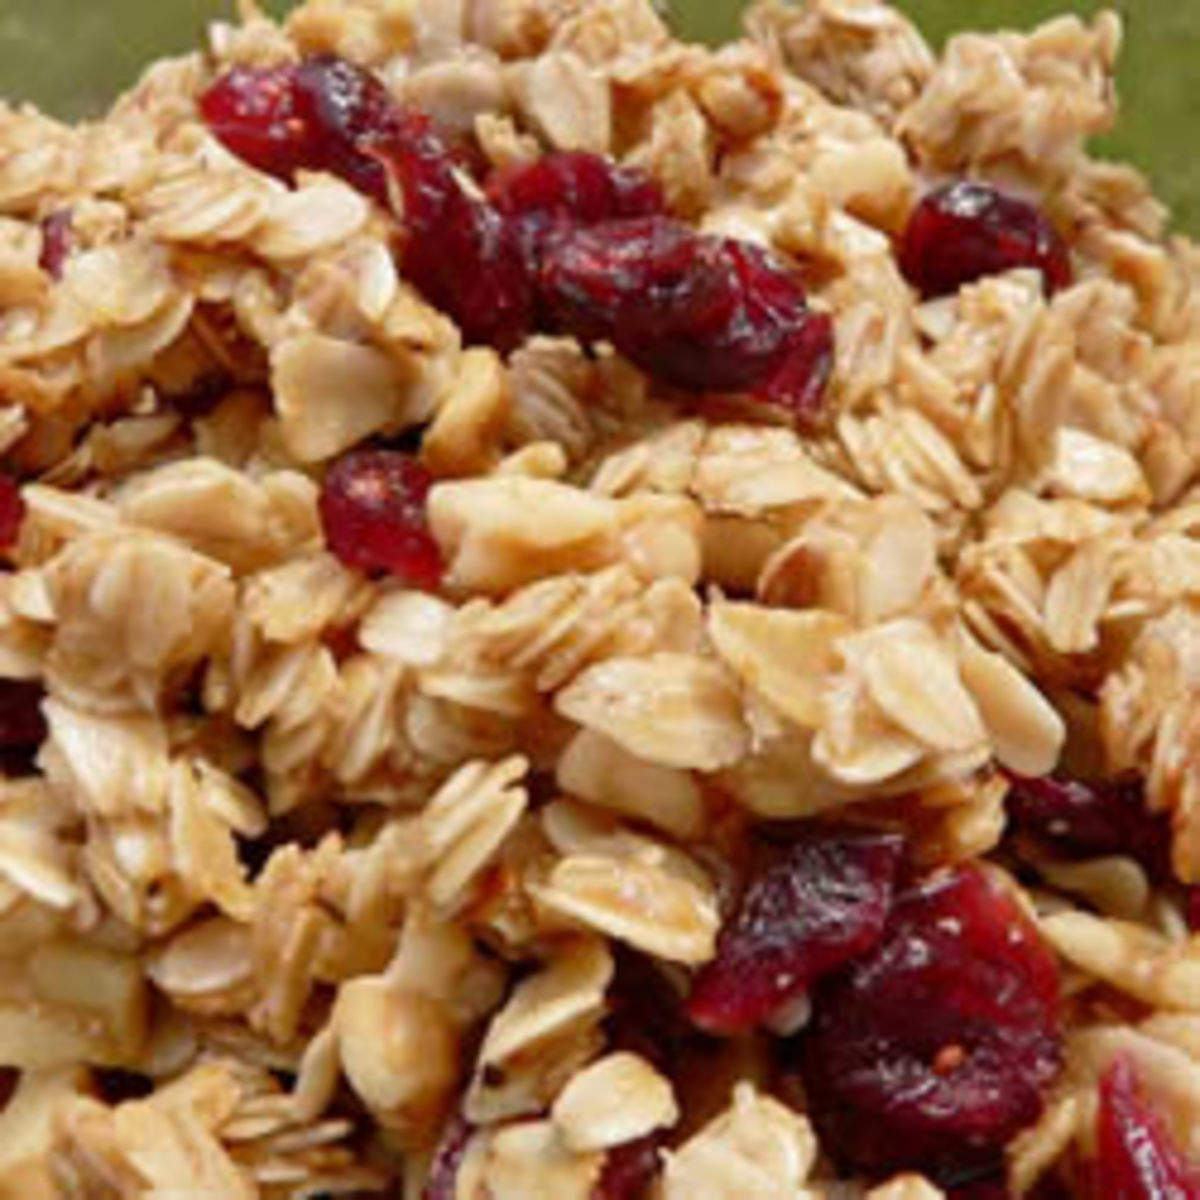 2. Stovetop Honey Granola With Cranberries & Almonds